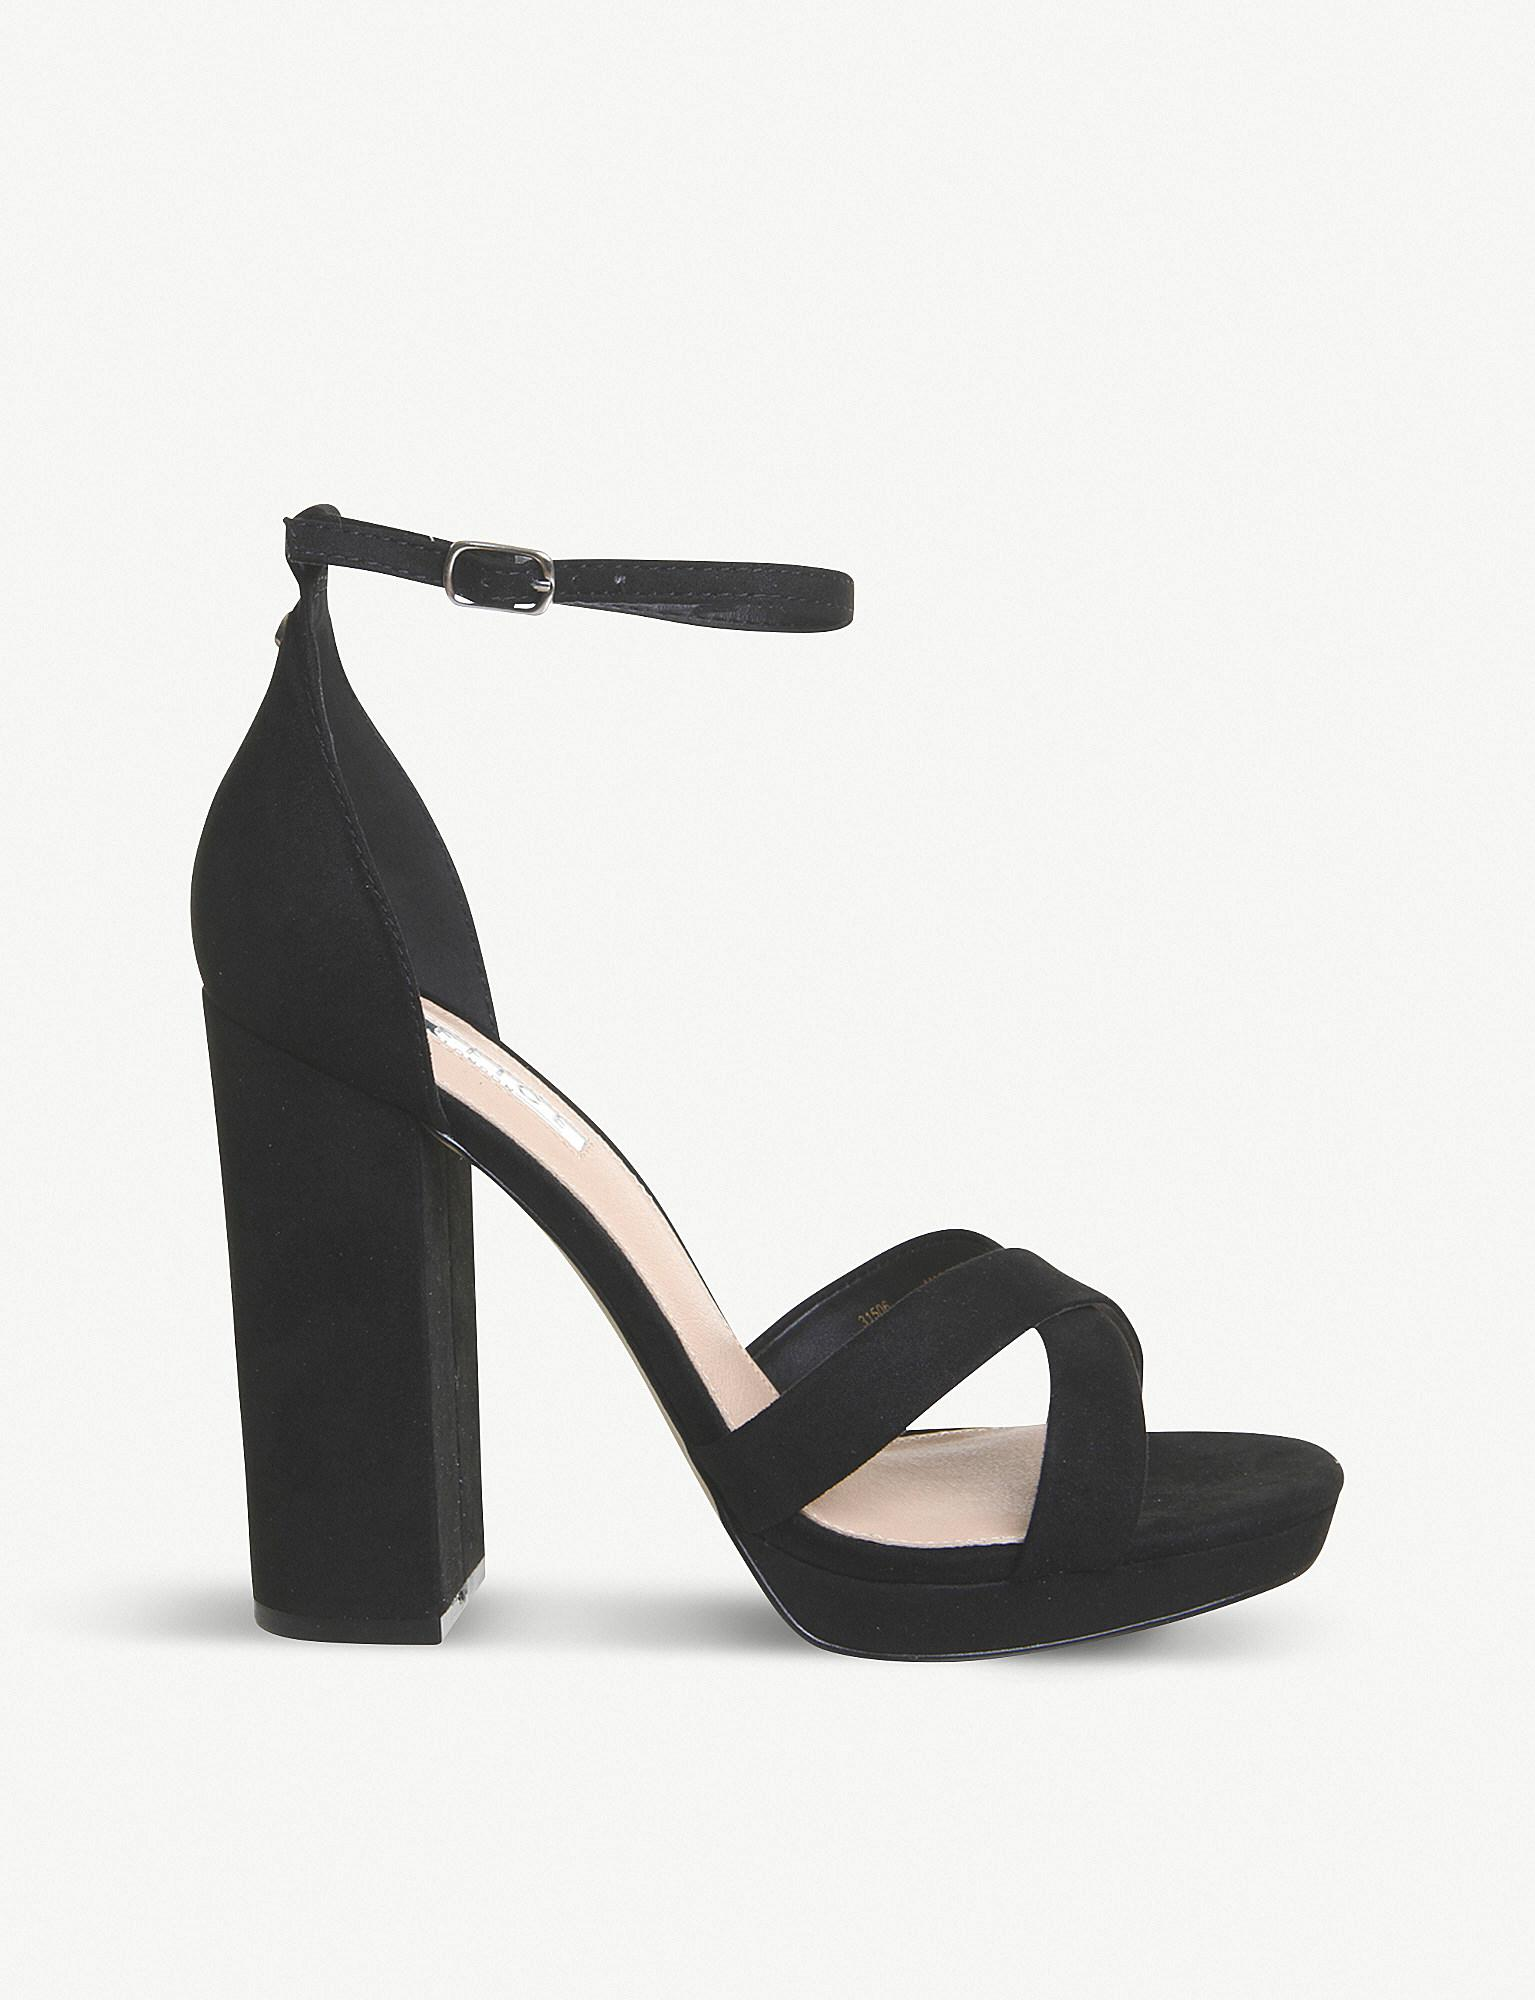 83590780dc4 Lyst - Office Hiccup Faux-leather Platform-heeled Sandals in Black